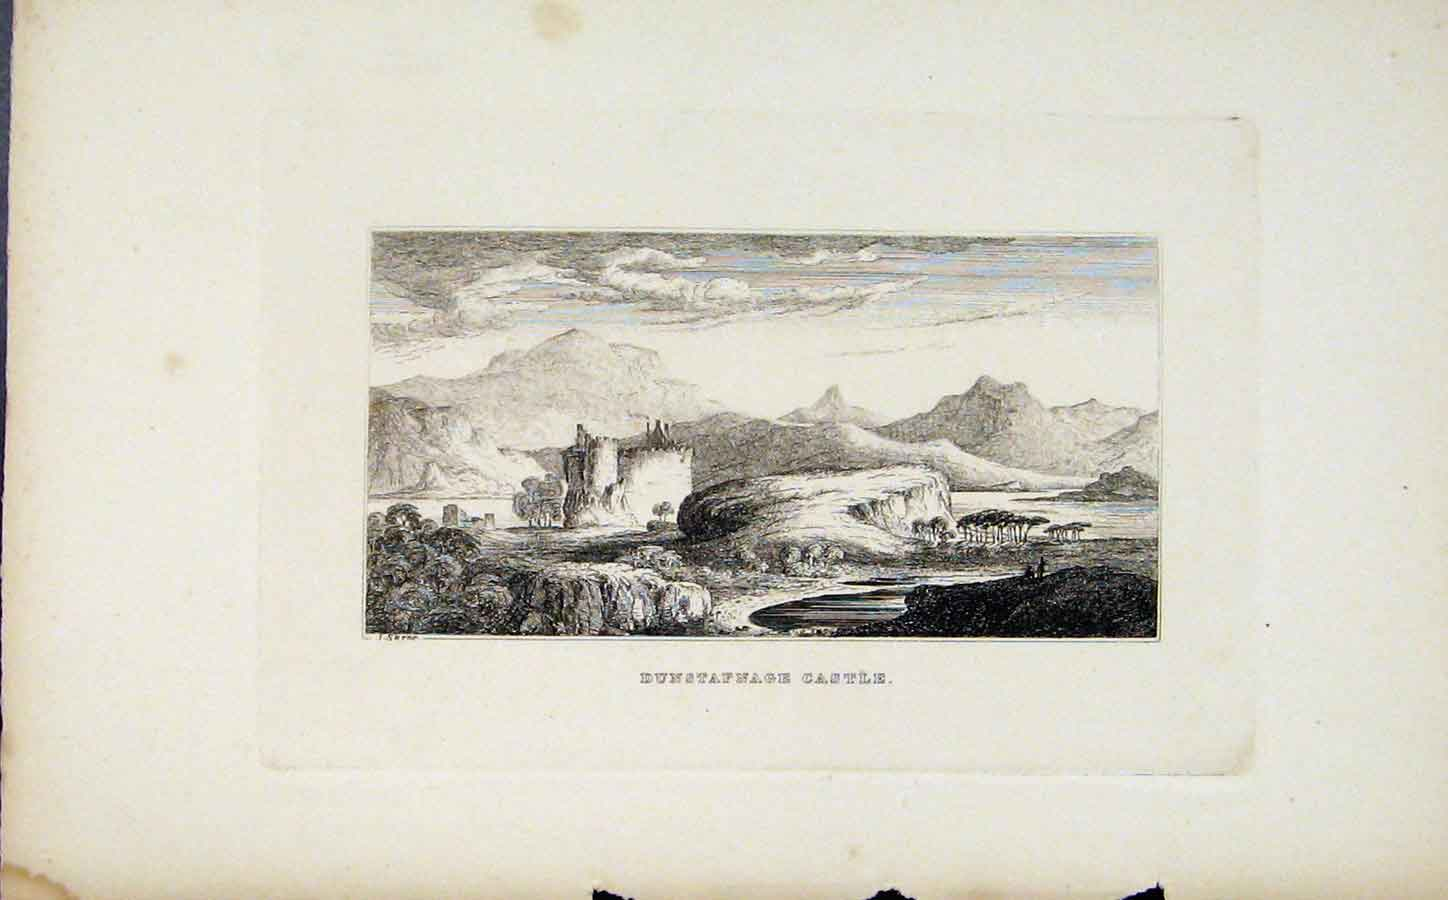 Print Etching C1830 Dunstafnage Castle Fine Art 158191 Old Original